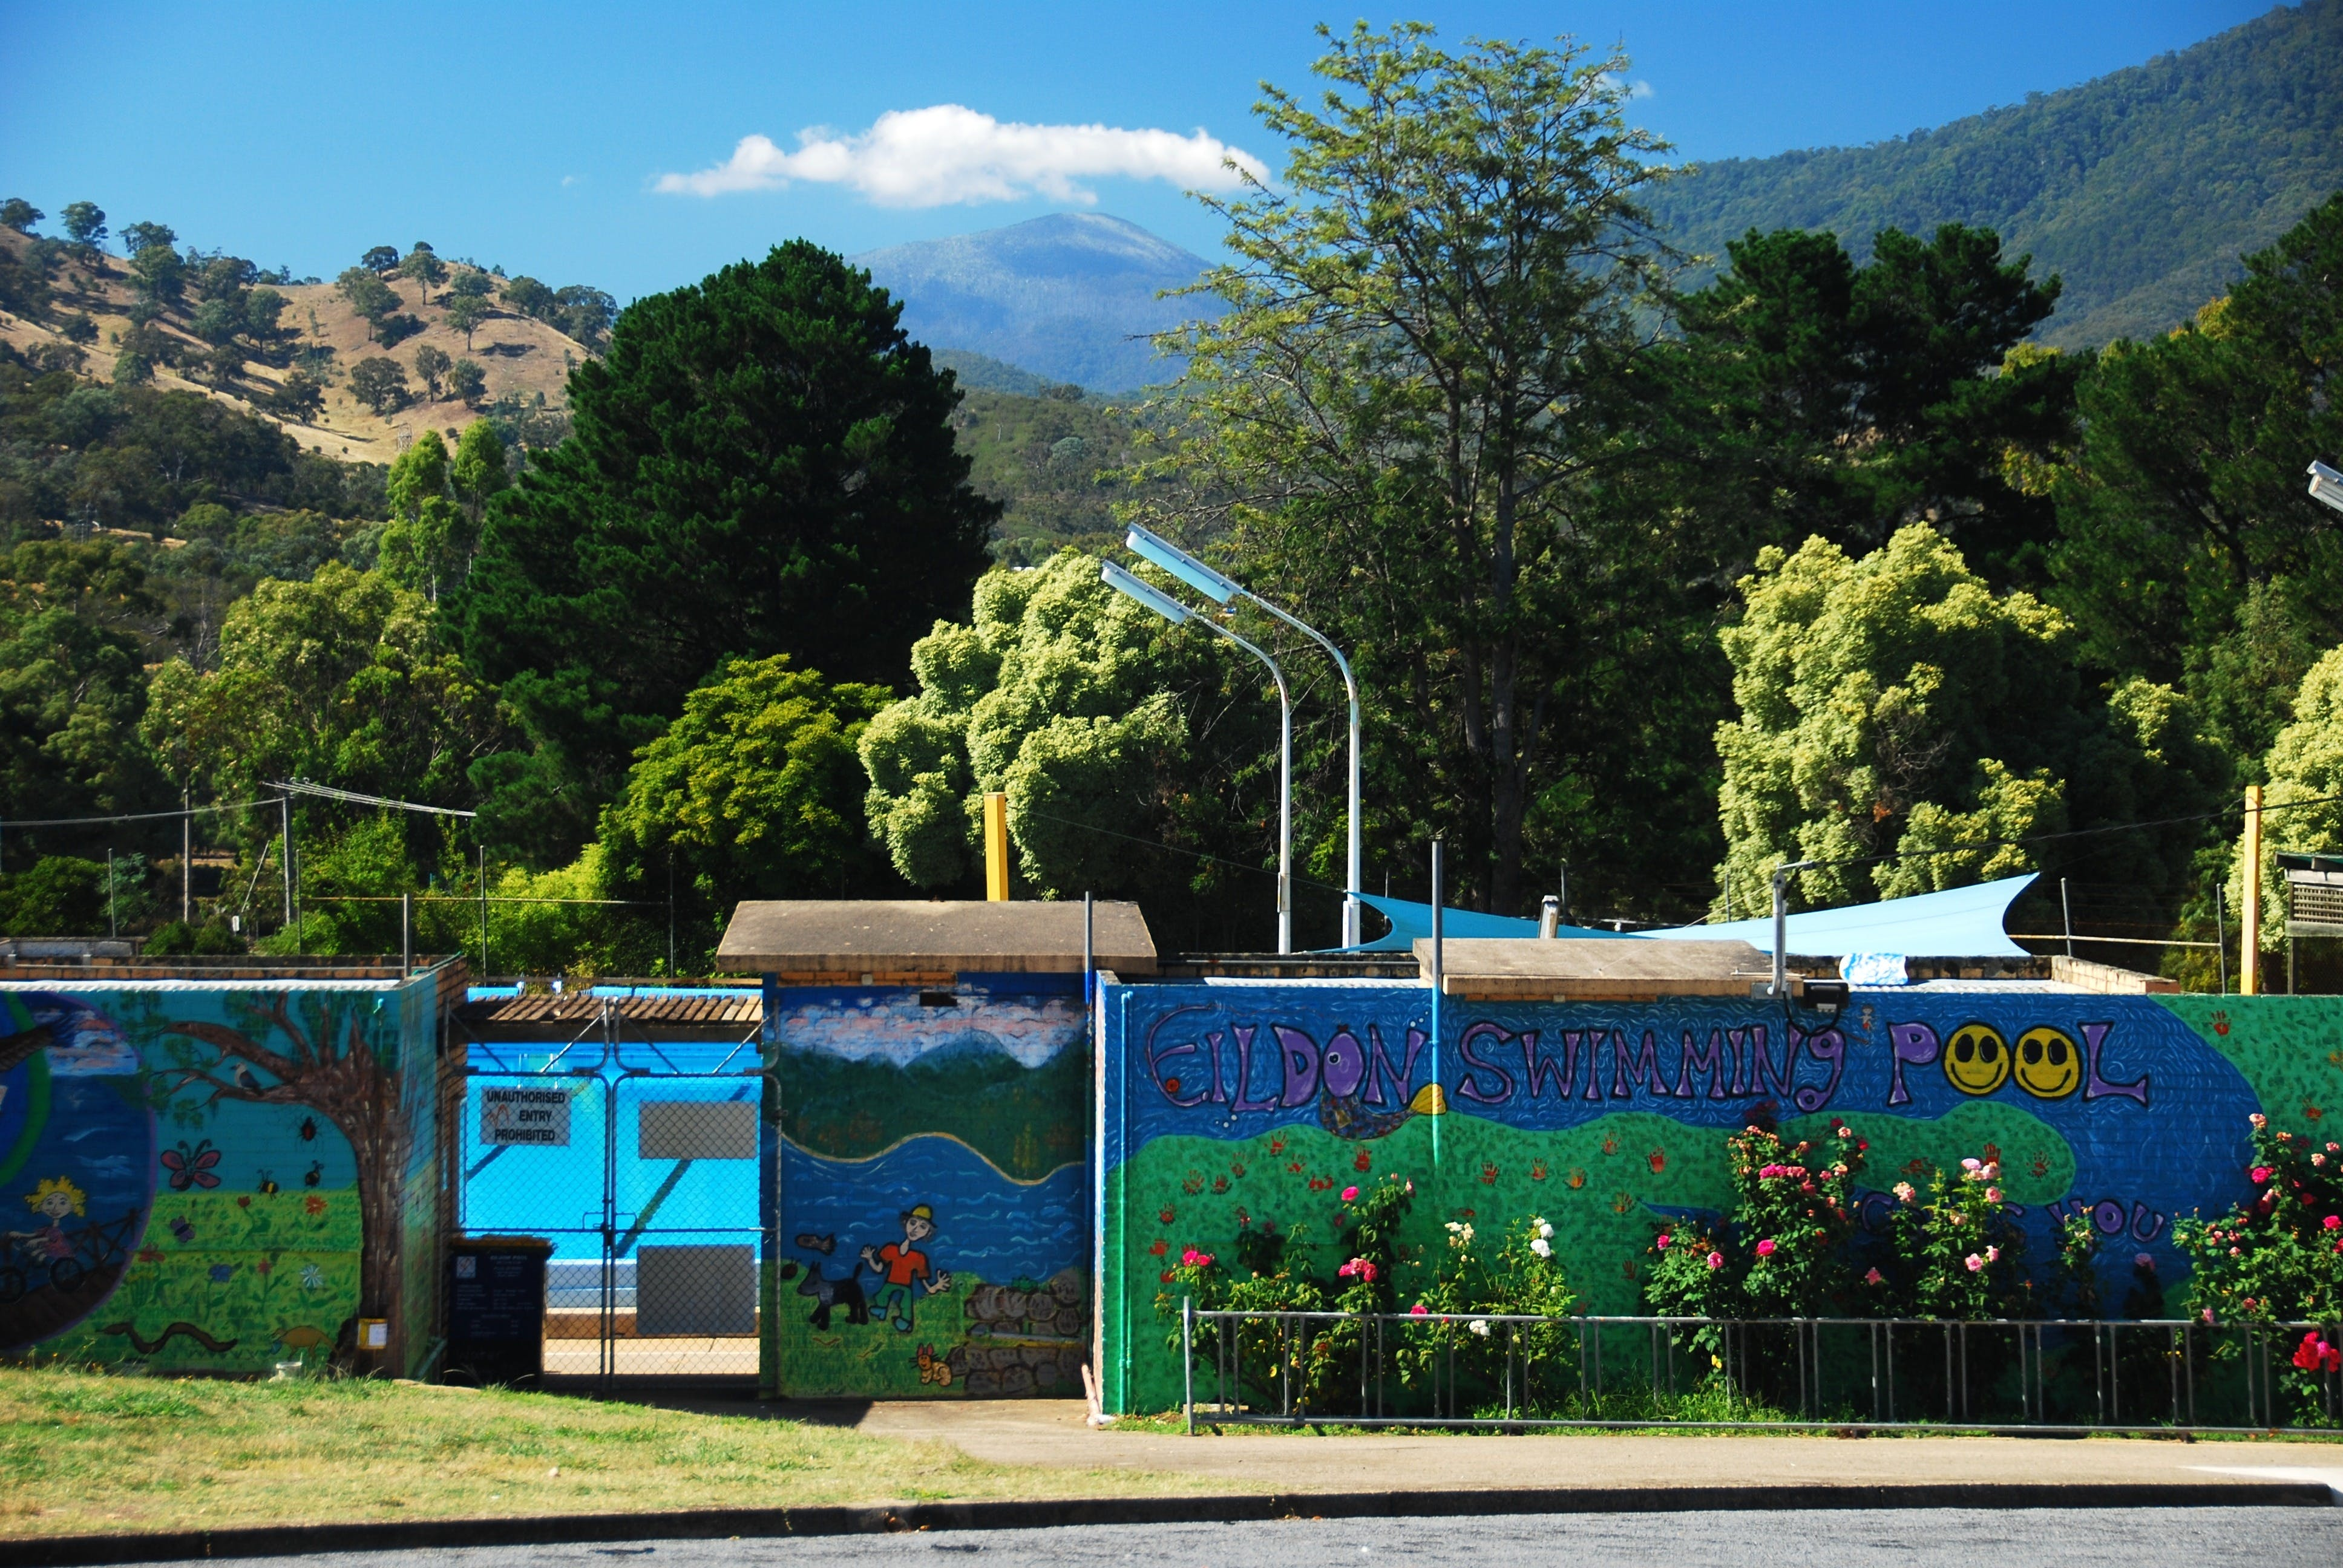 Eildon Outdoor Swimming Pool - Find Attractions